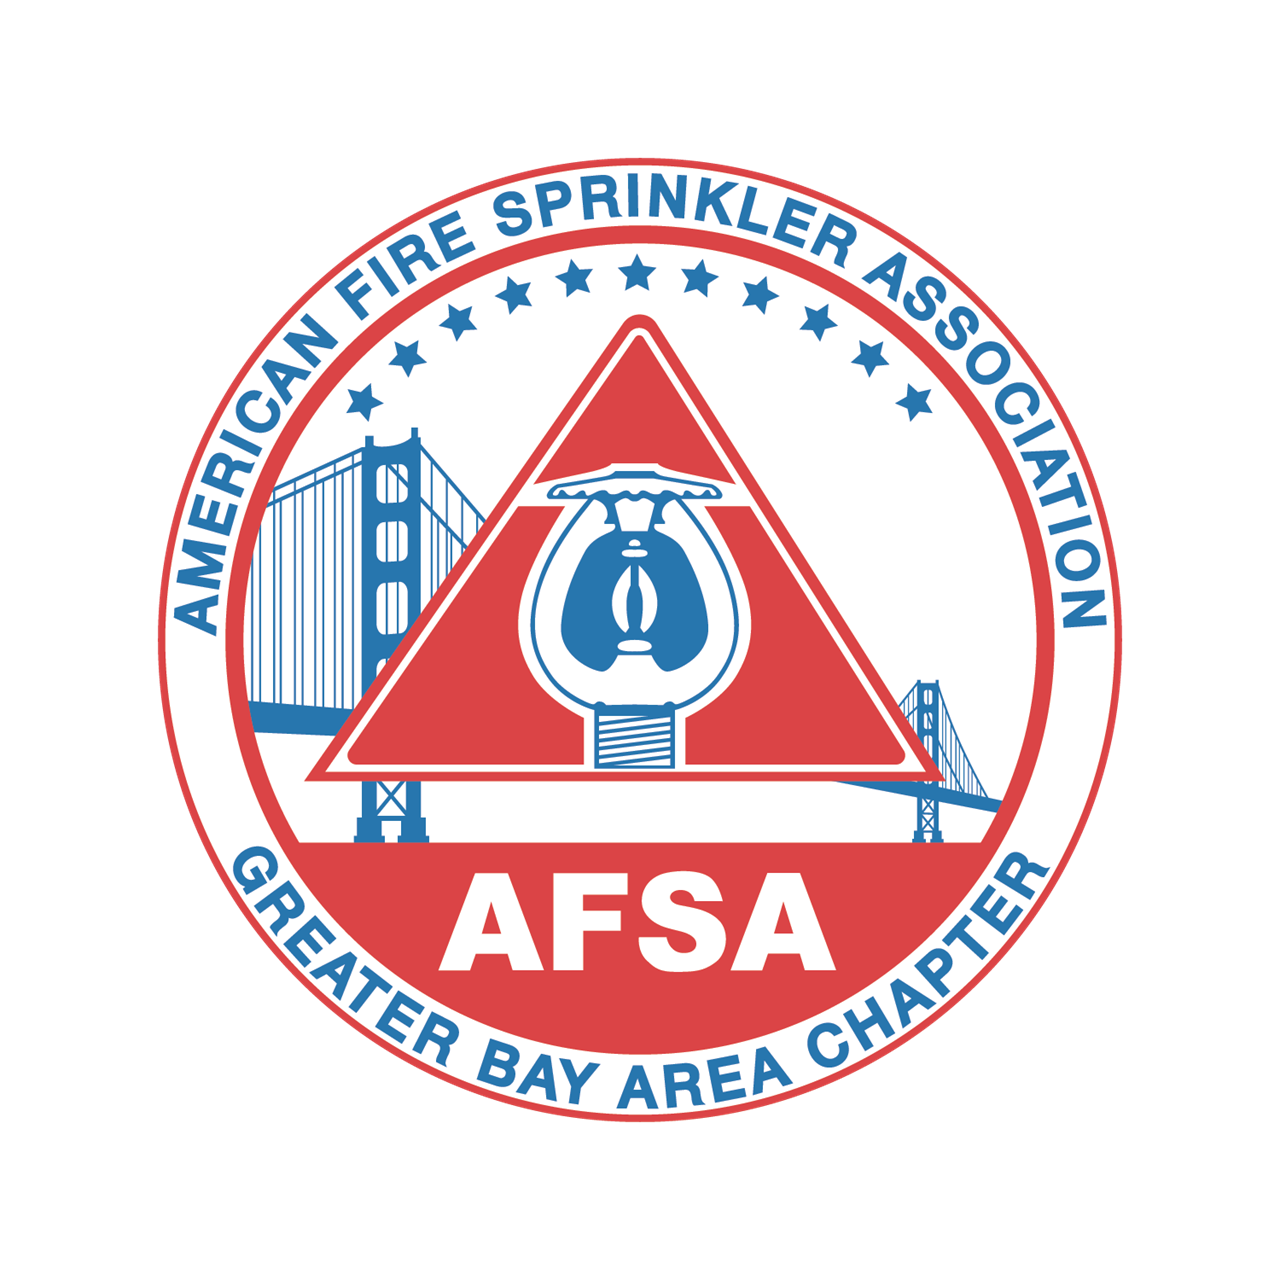 Greater Bay Area Chapter AFSA